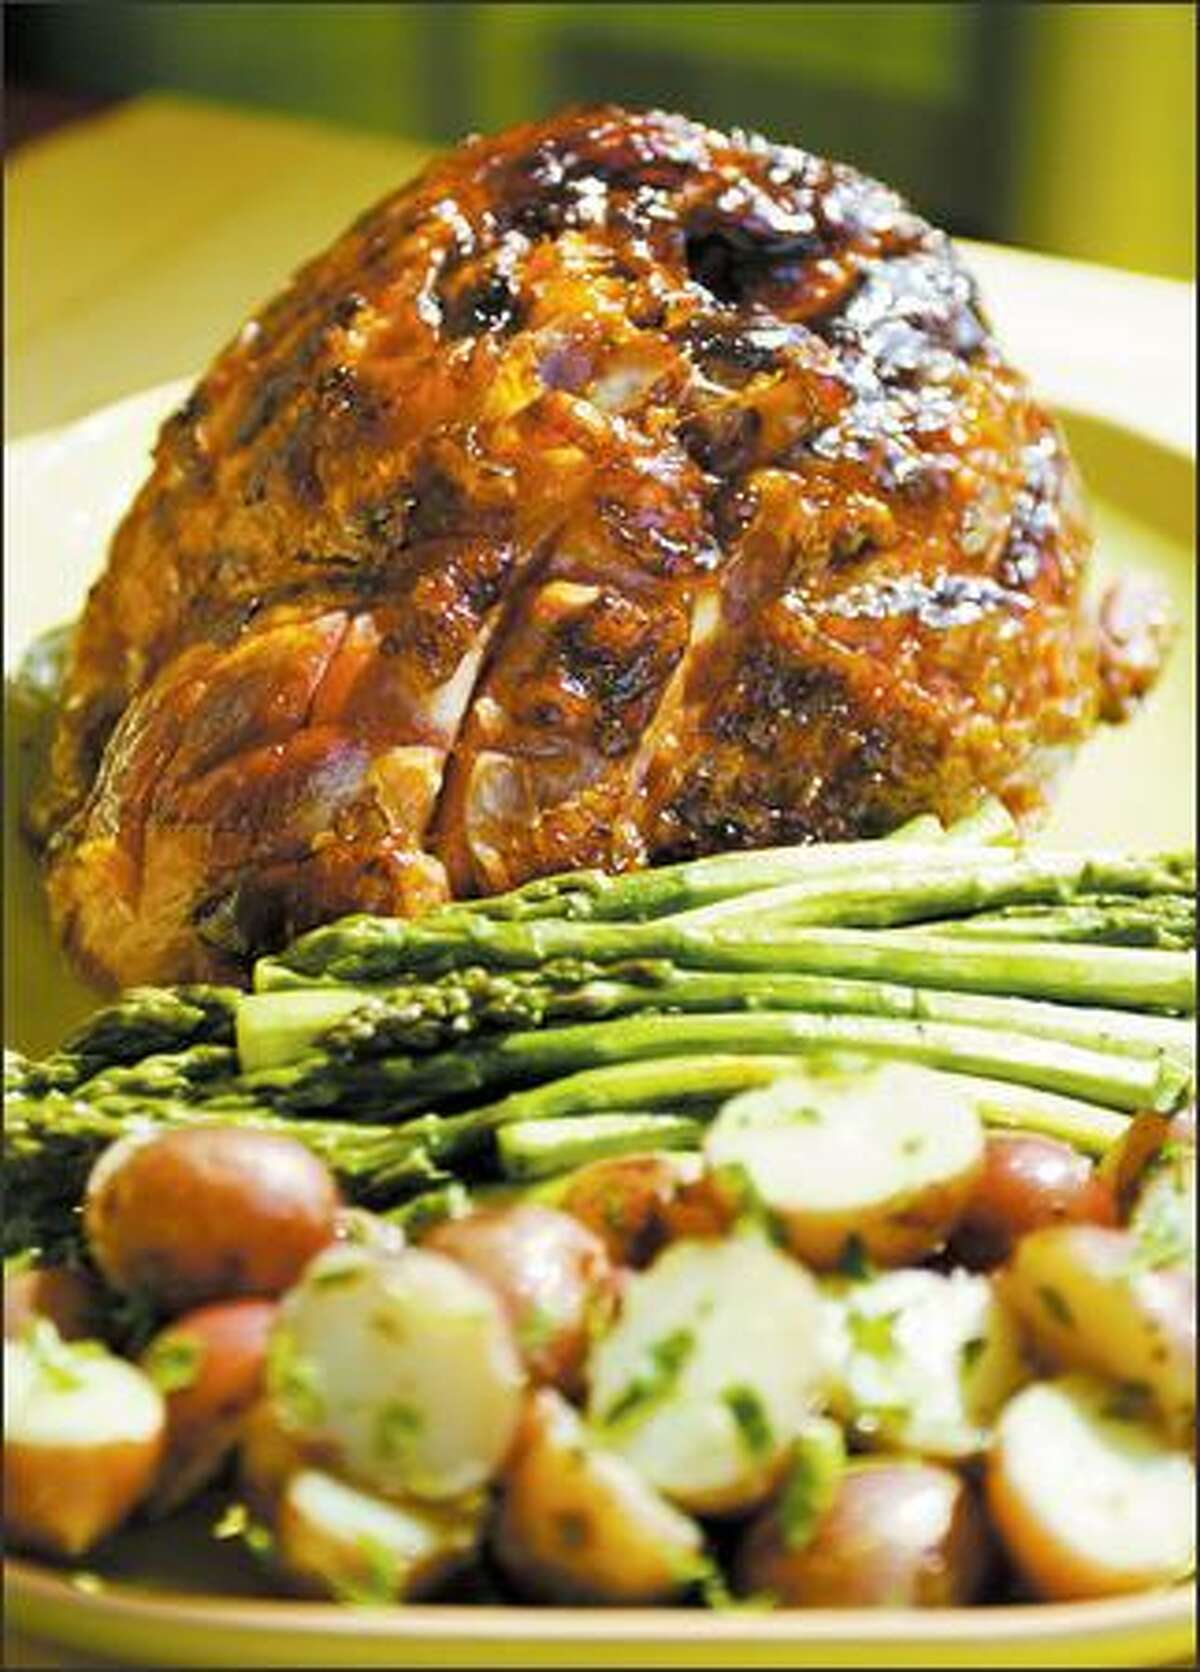 Kurobuta pork from Snake River Farms goes well with steamed asparagus and potatoes. Our tasters found it tender.